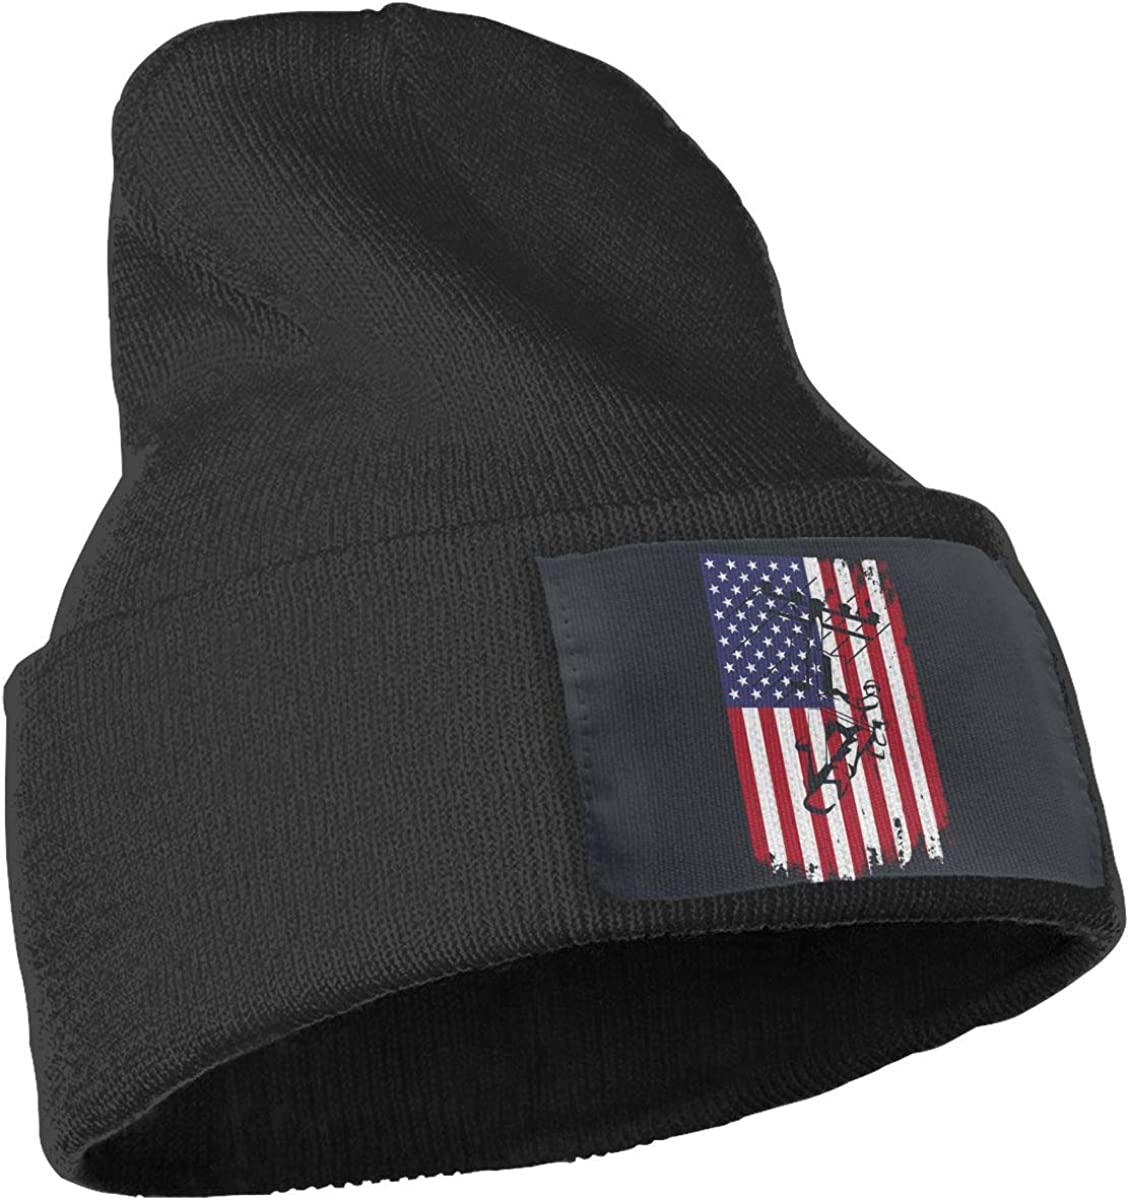 COLLJL-8 Unisex Lineman American Flag Outdoor Fashion Knit Beanies Hat Soft Winter Skull Caps